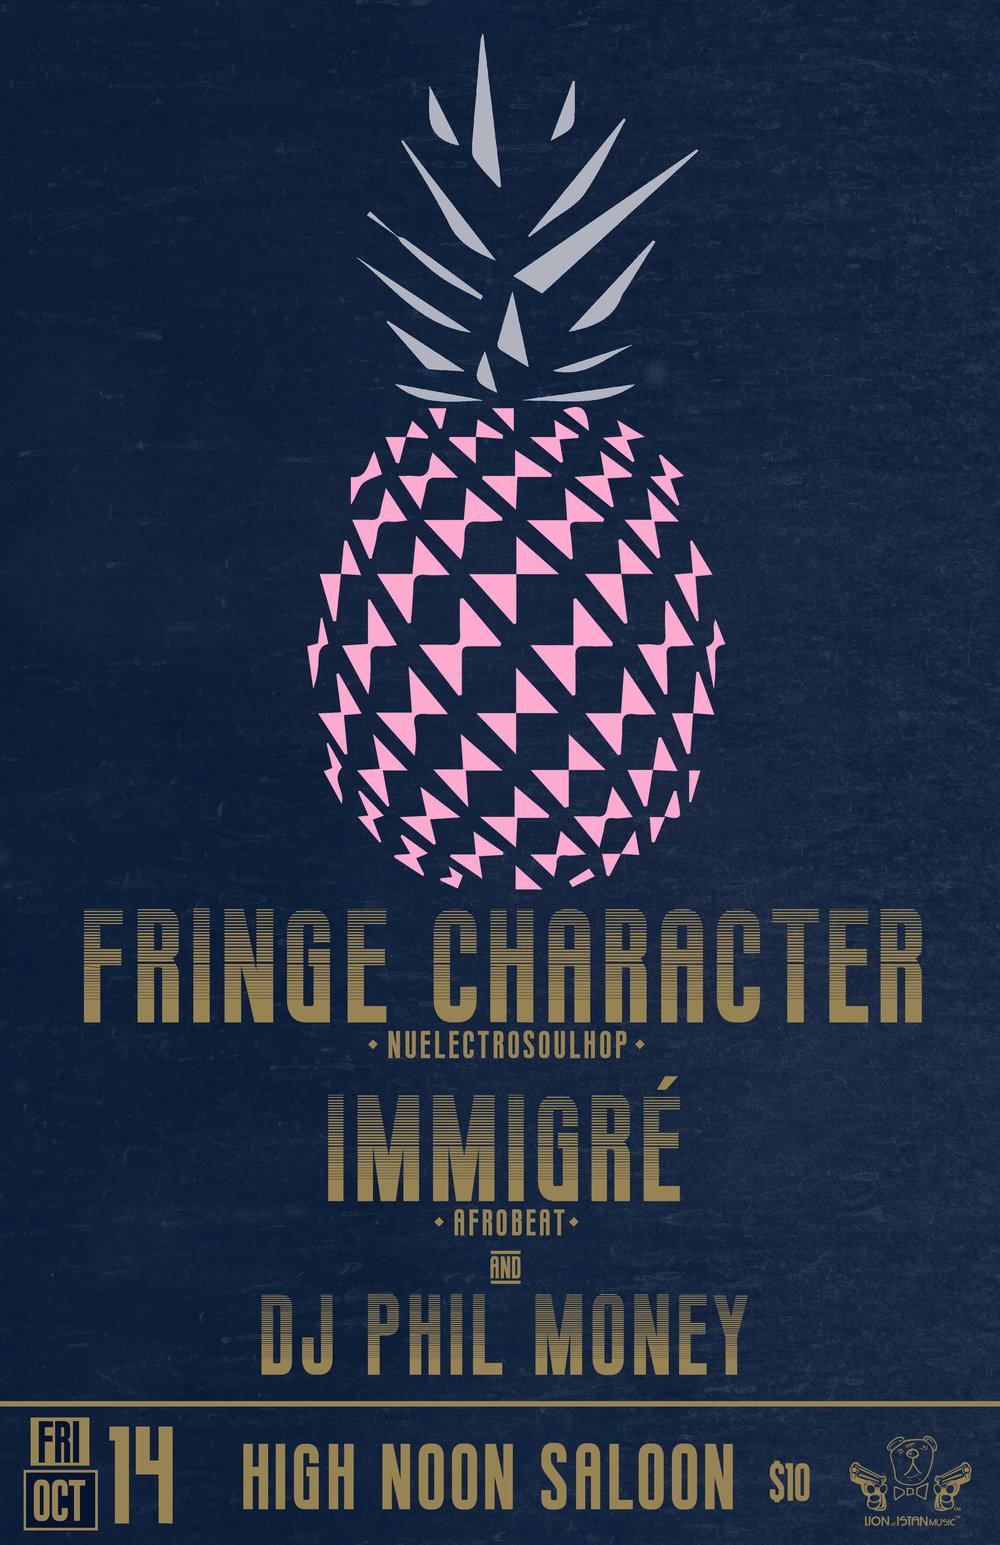 Fringe Character | Immigré | DJ Phil Money at High Noon Saloon